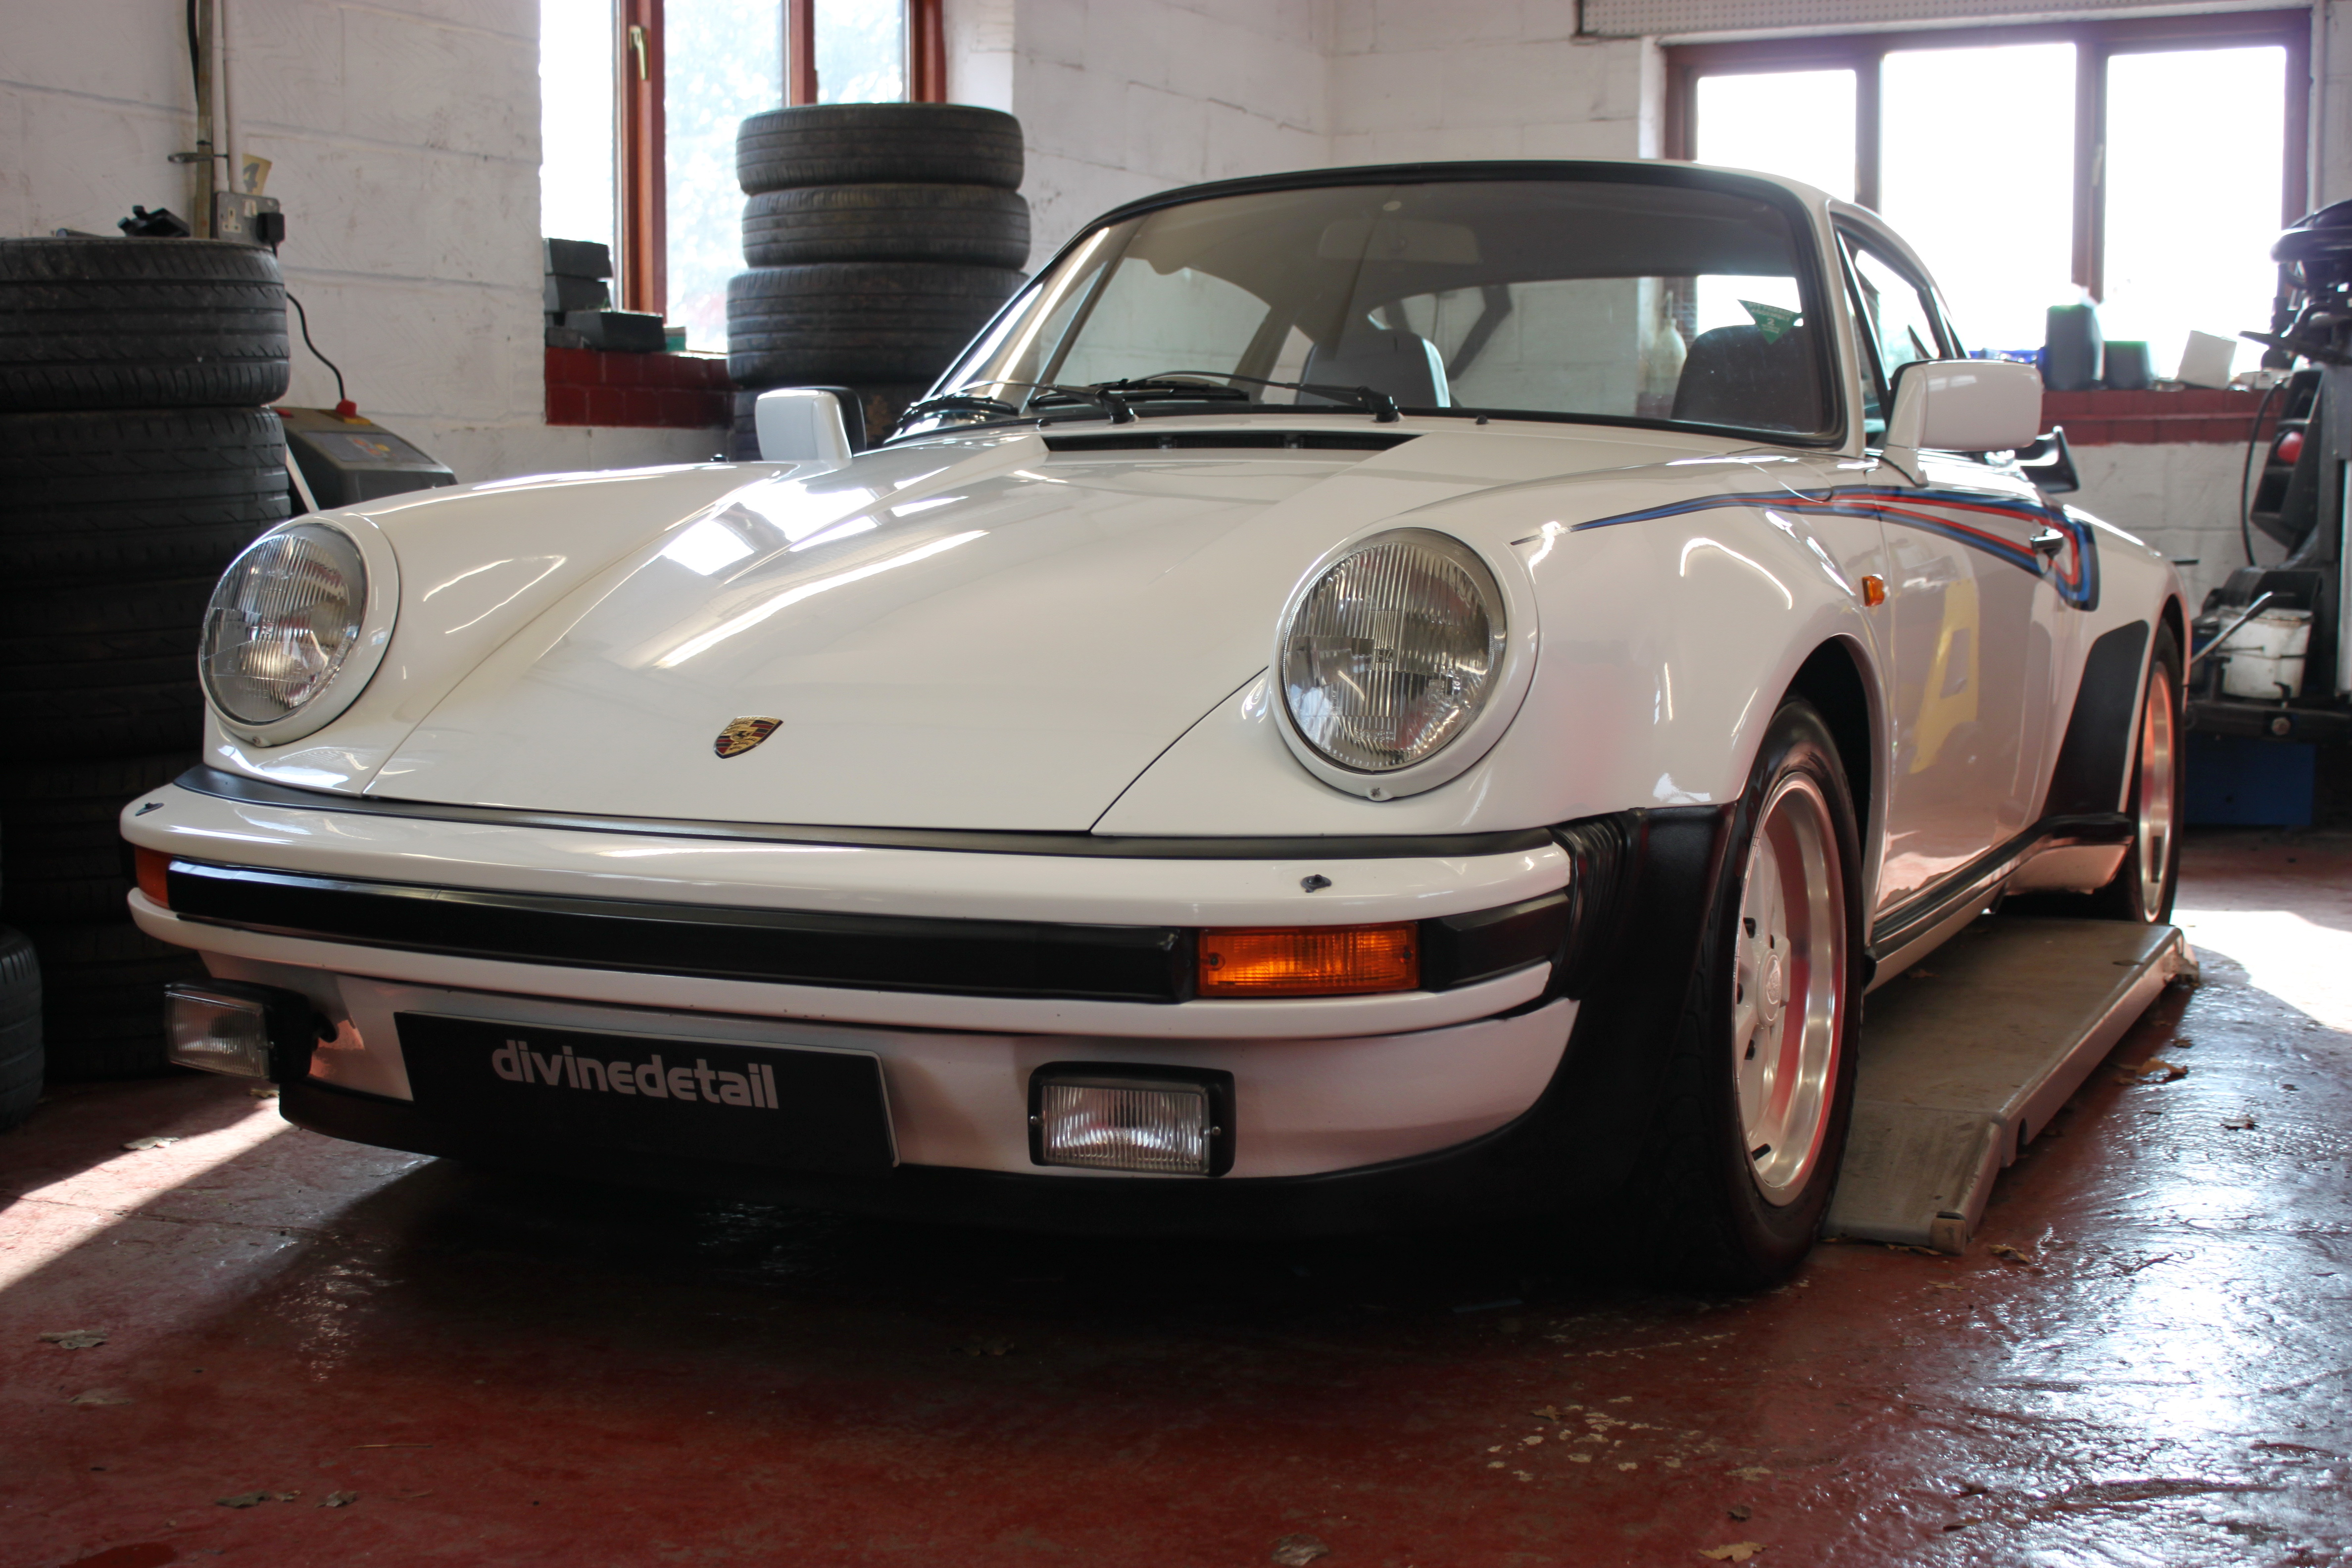 Porsche 930 Turbo detailed